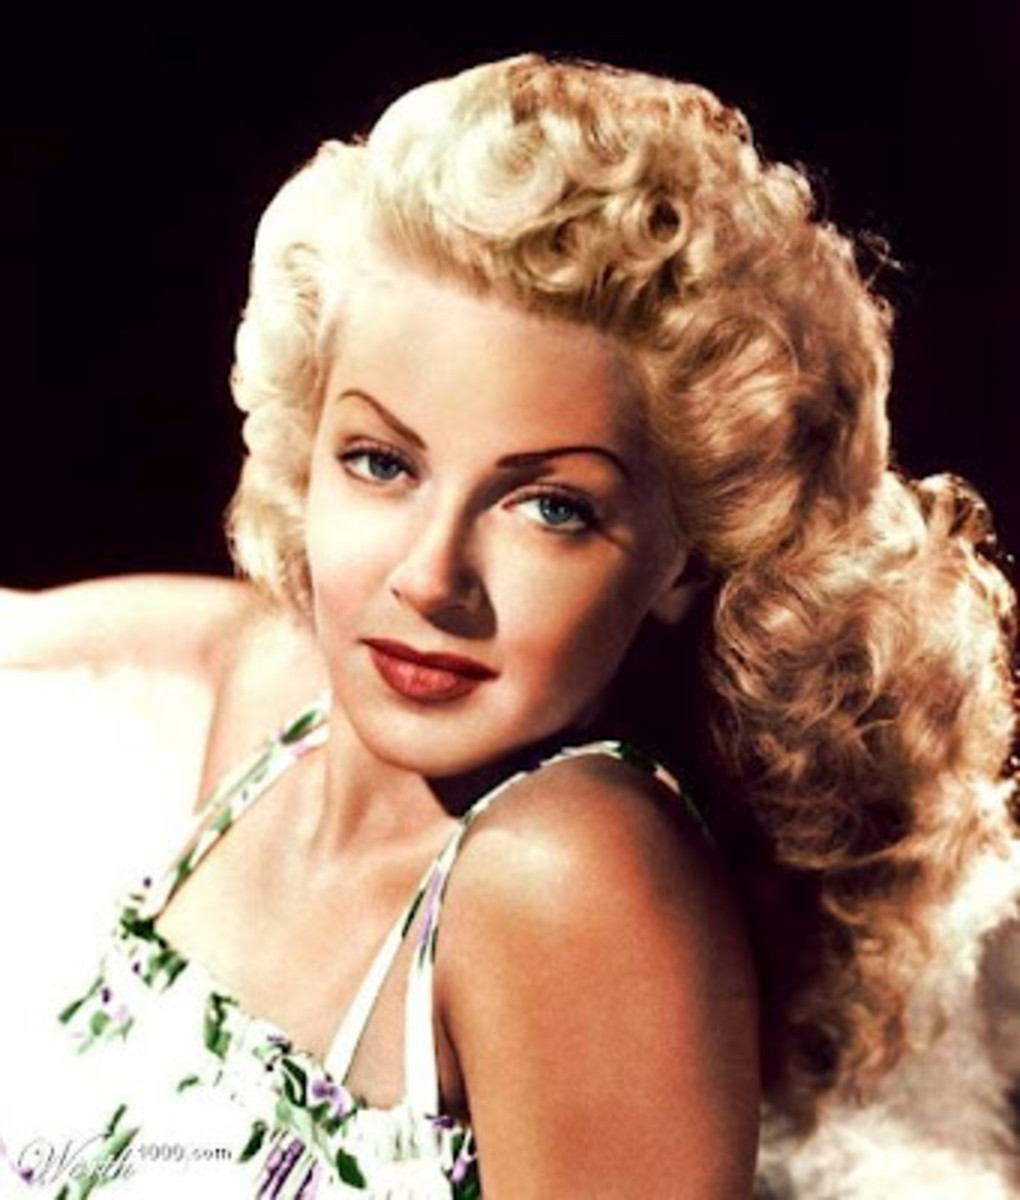 hollywood-glamour-and-murder-the-true-story-of-lana-turner-and-the-death-of-her-boy-toy